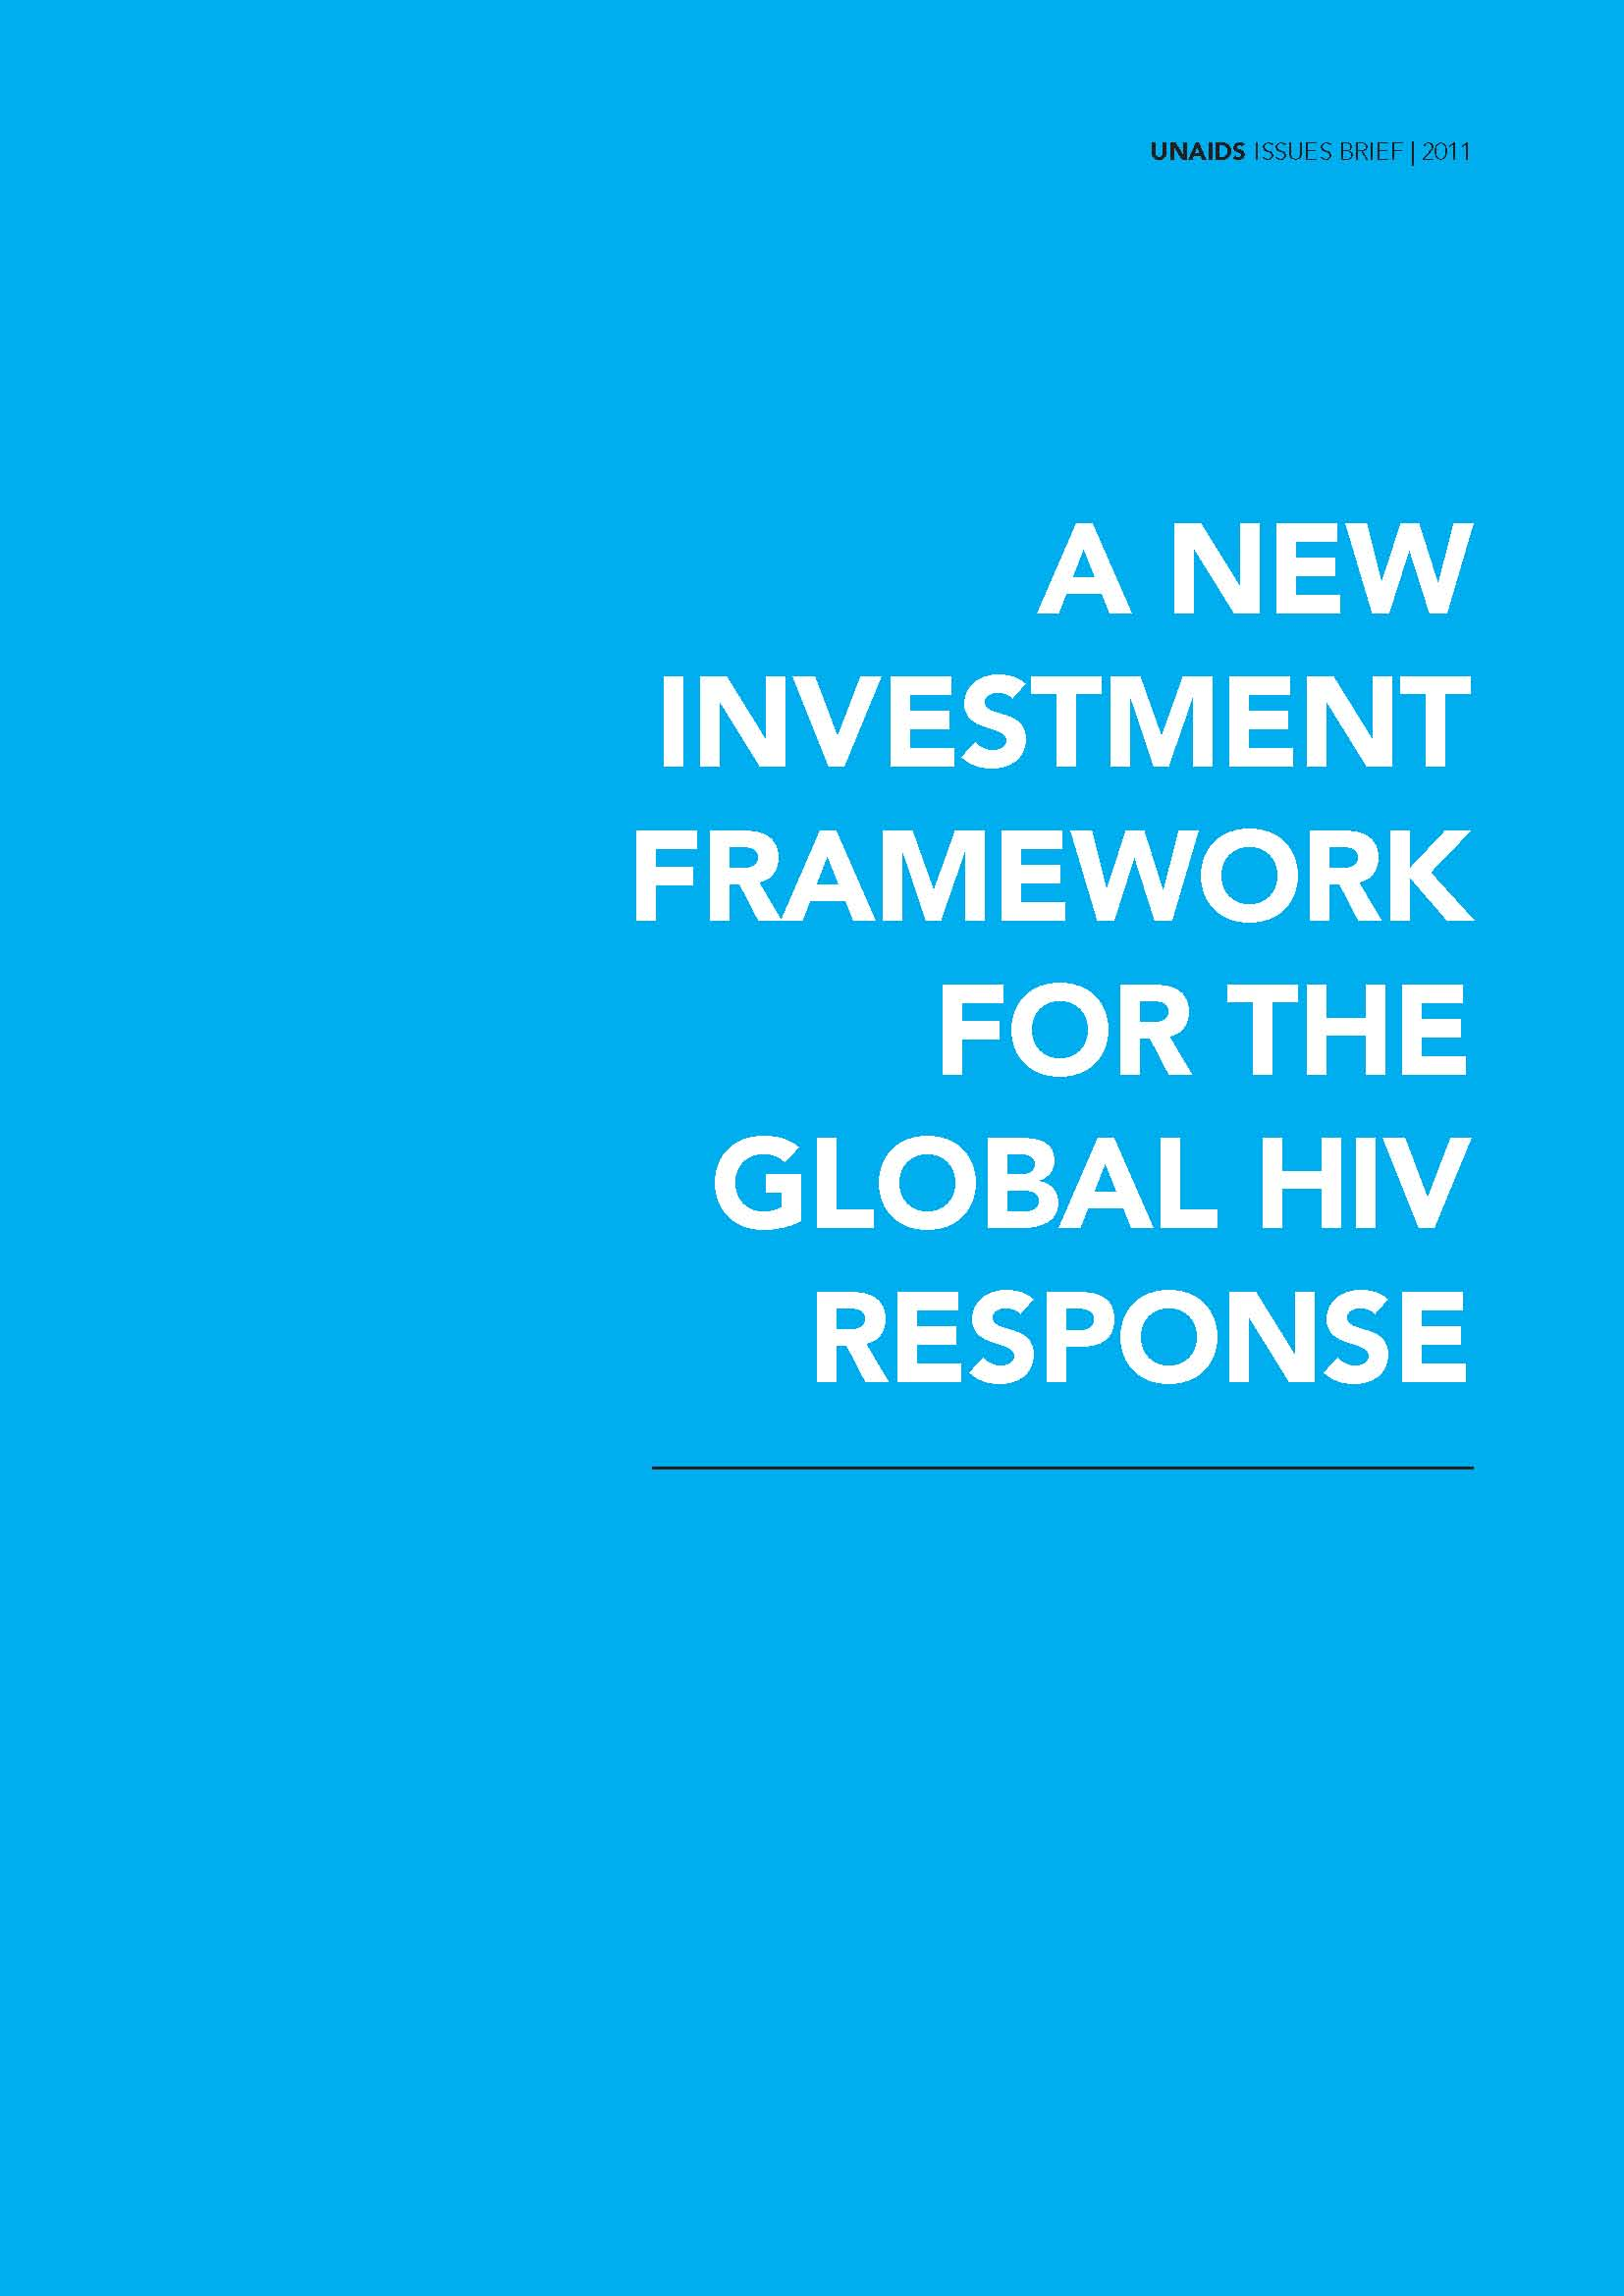 A New Investment Framework for the Global HIV Response